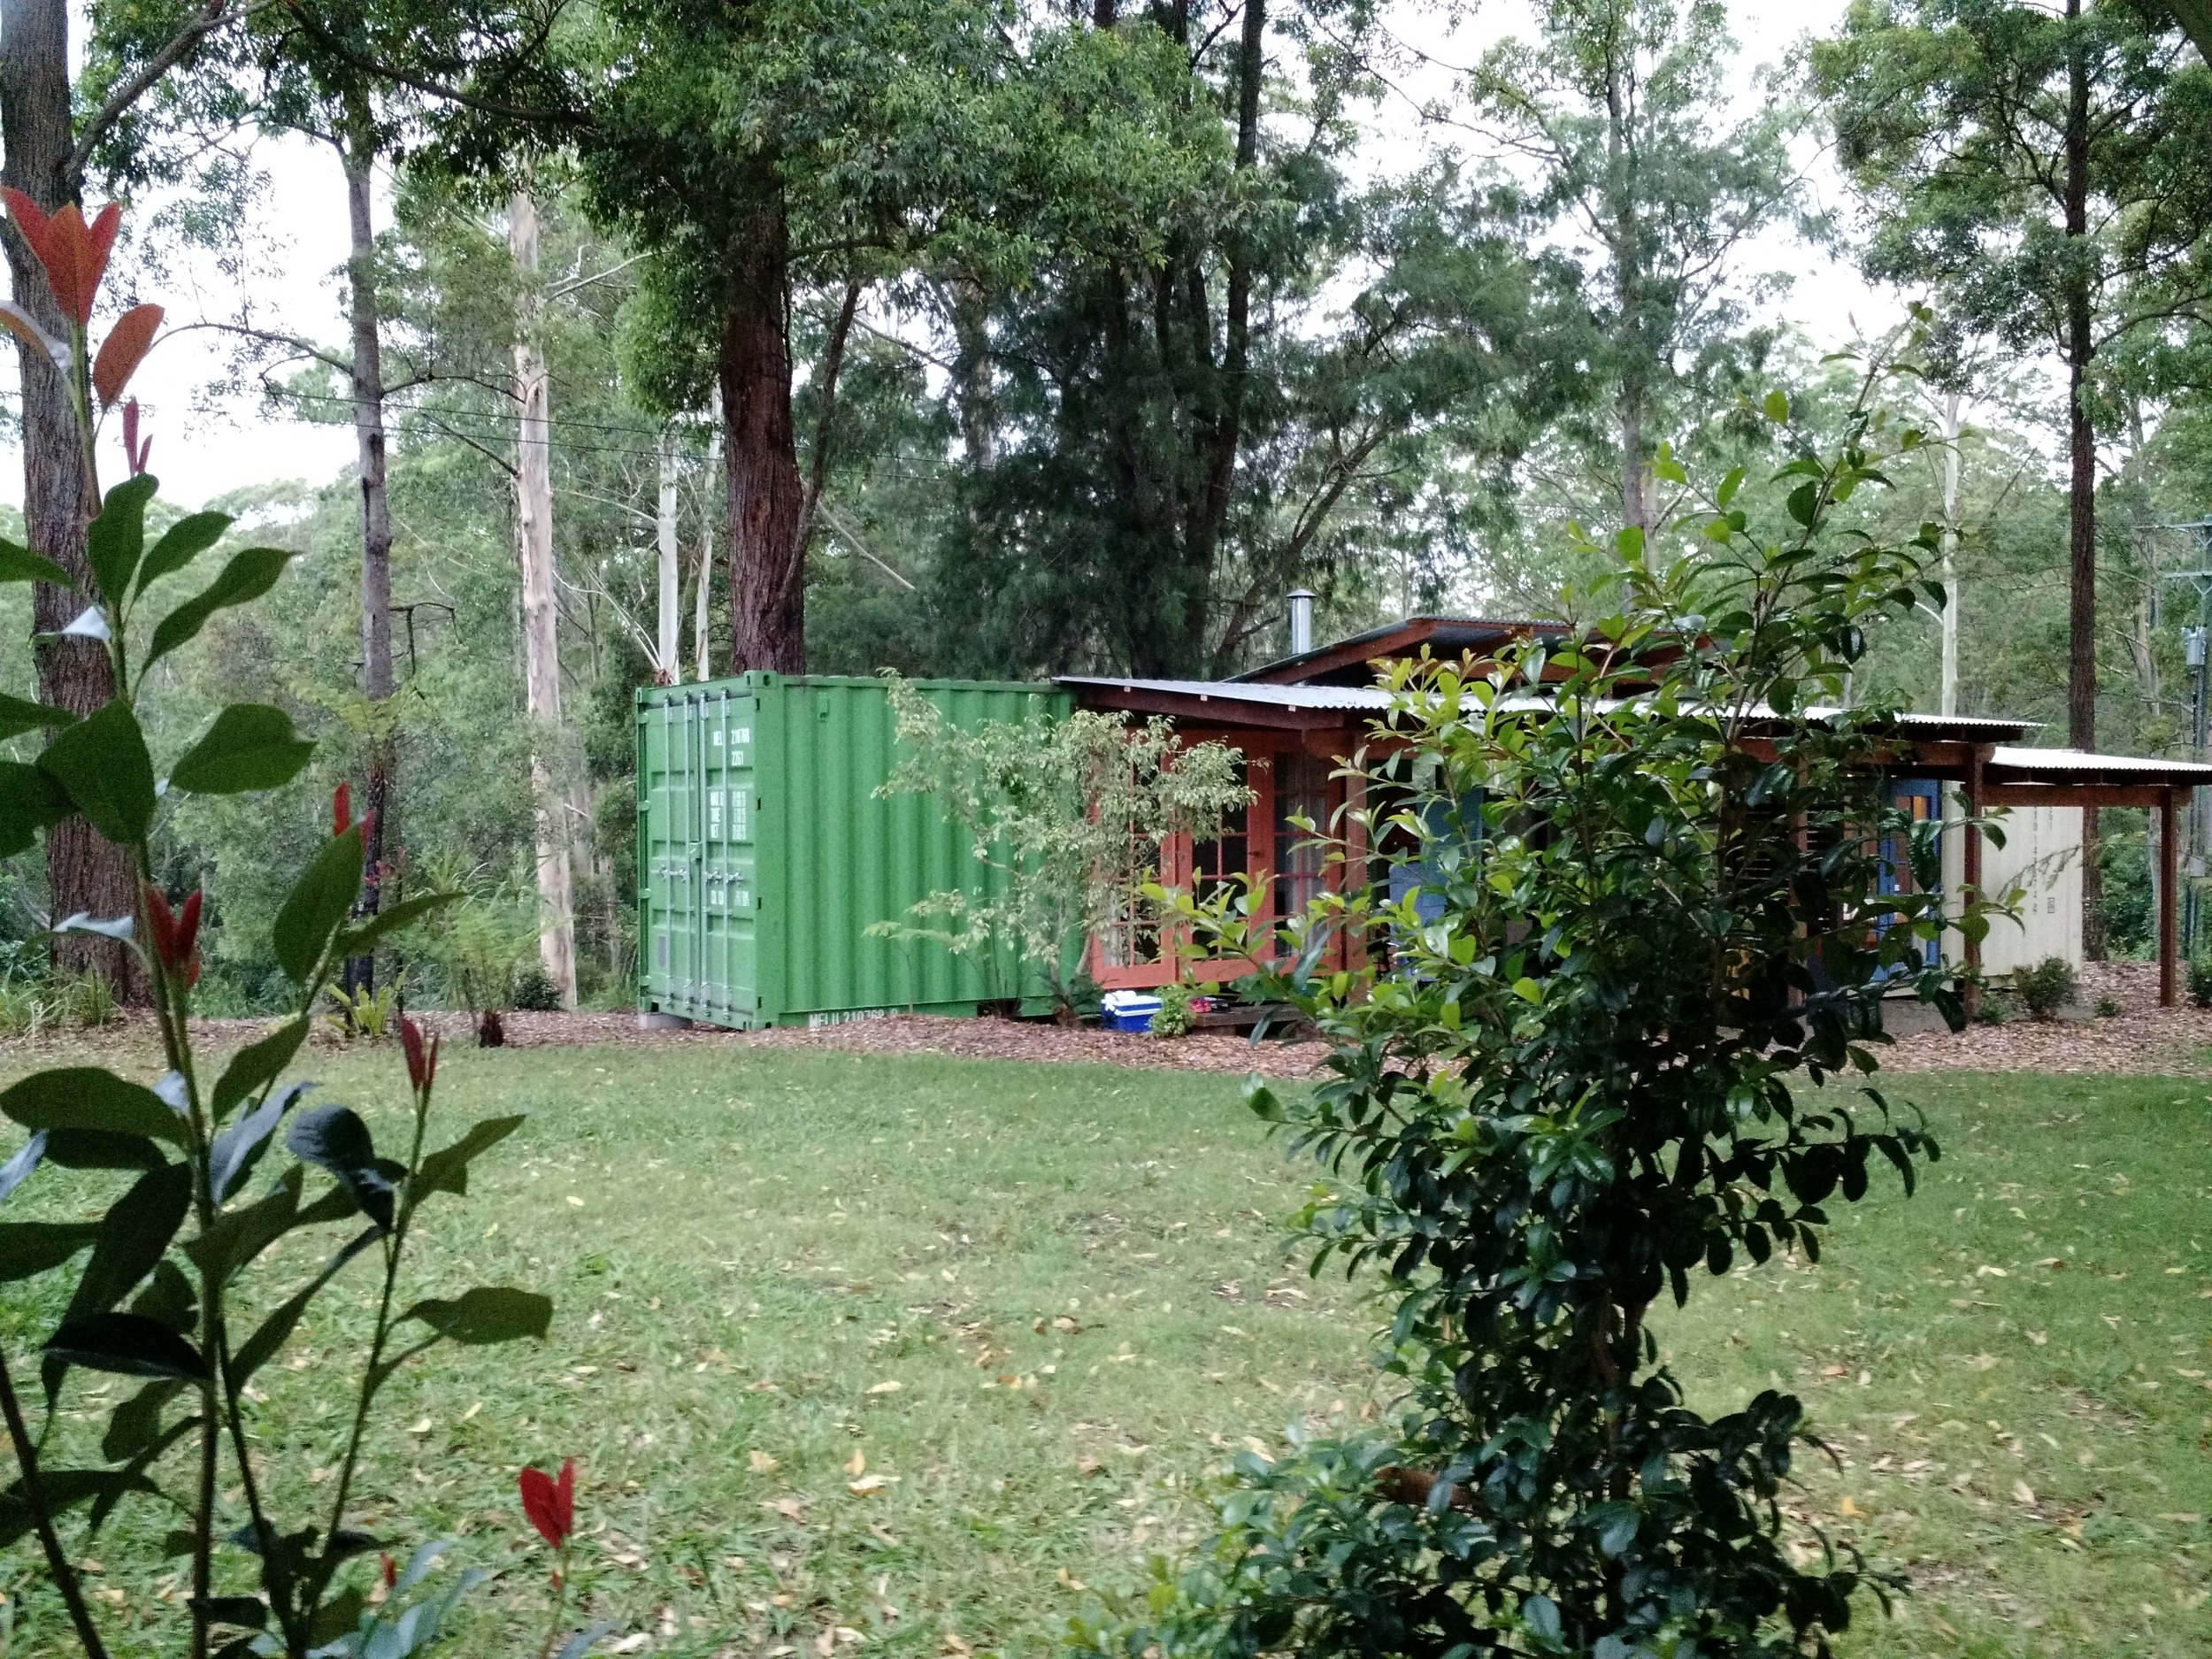 Shipping container heaven in Belligen